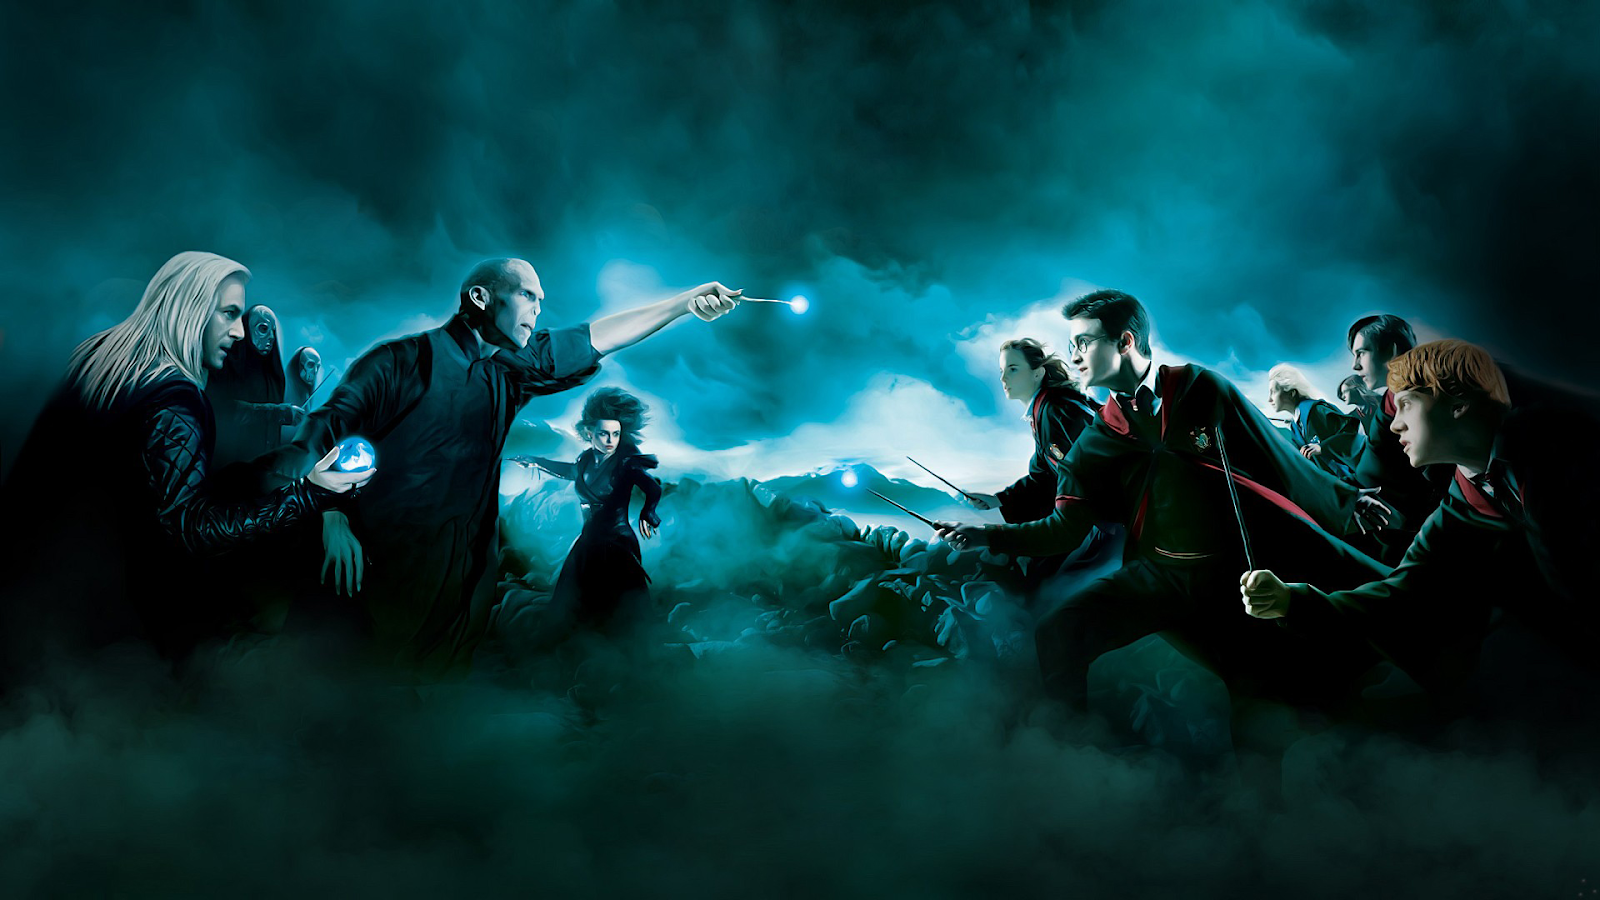 C:\Users\user\Desktop\Reacho\pics\BATTleOFhoGWARtsz.PNG